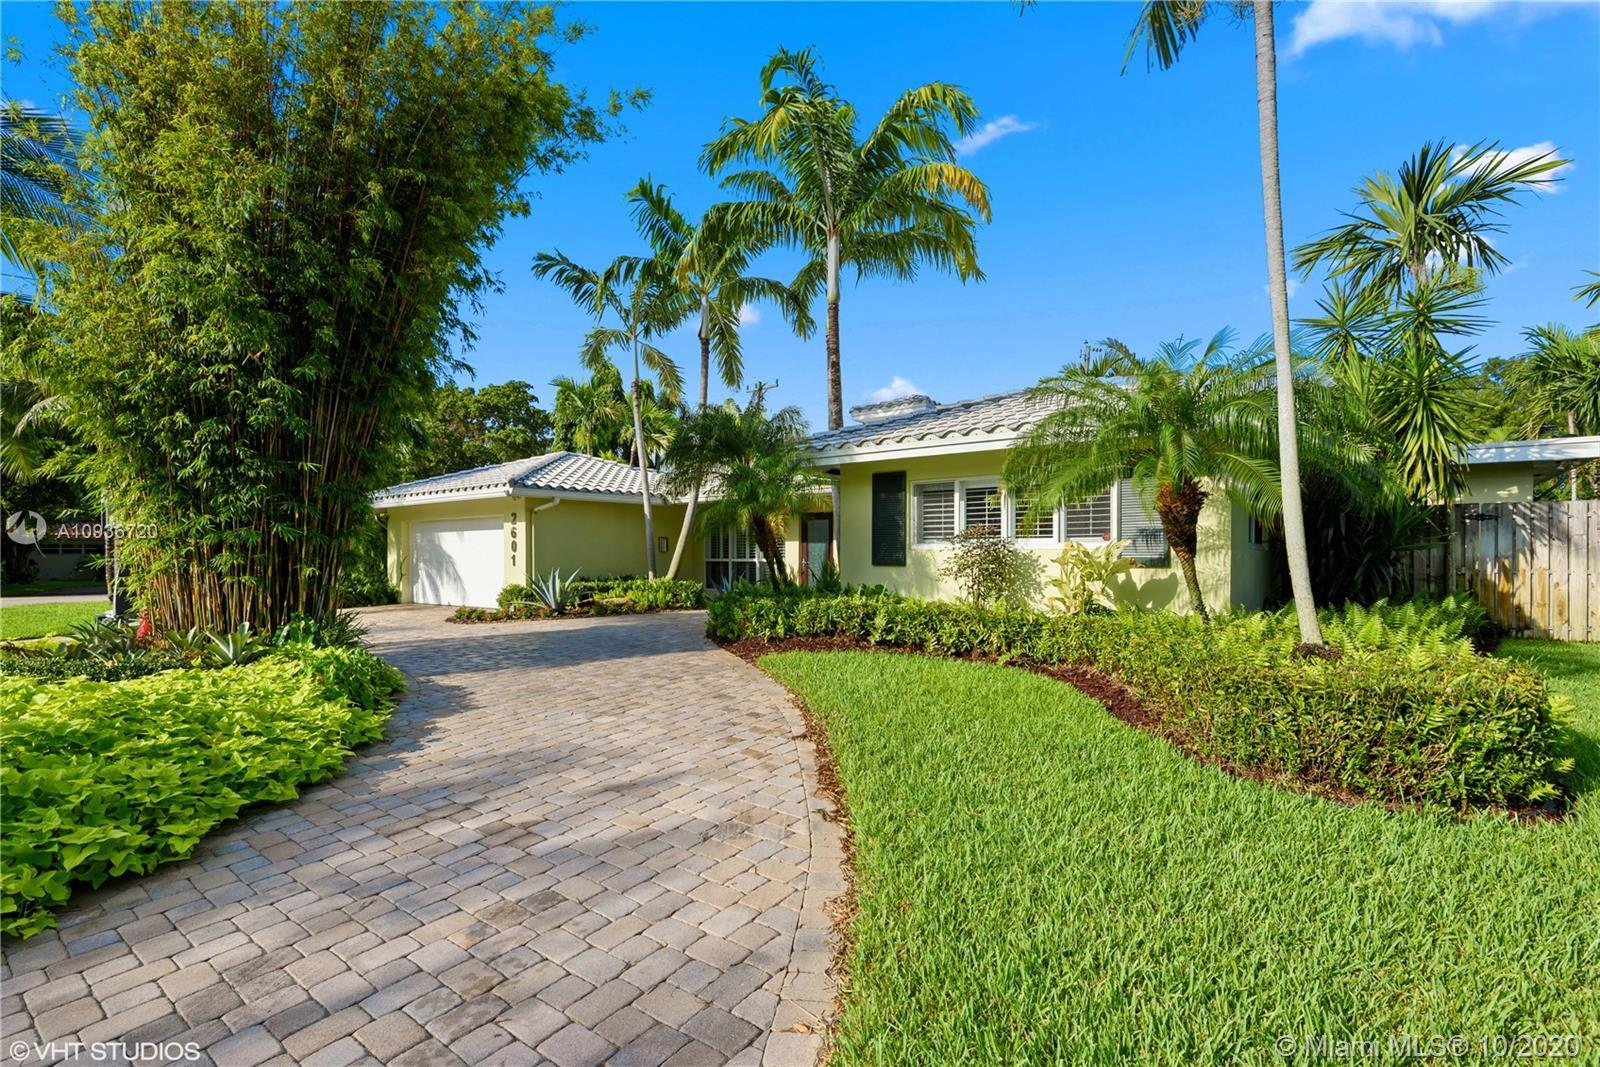 This spectacular 3,000+ square foot pool home is situated on an over-sized, lushly landscaped corner